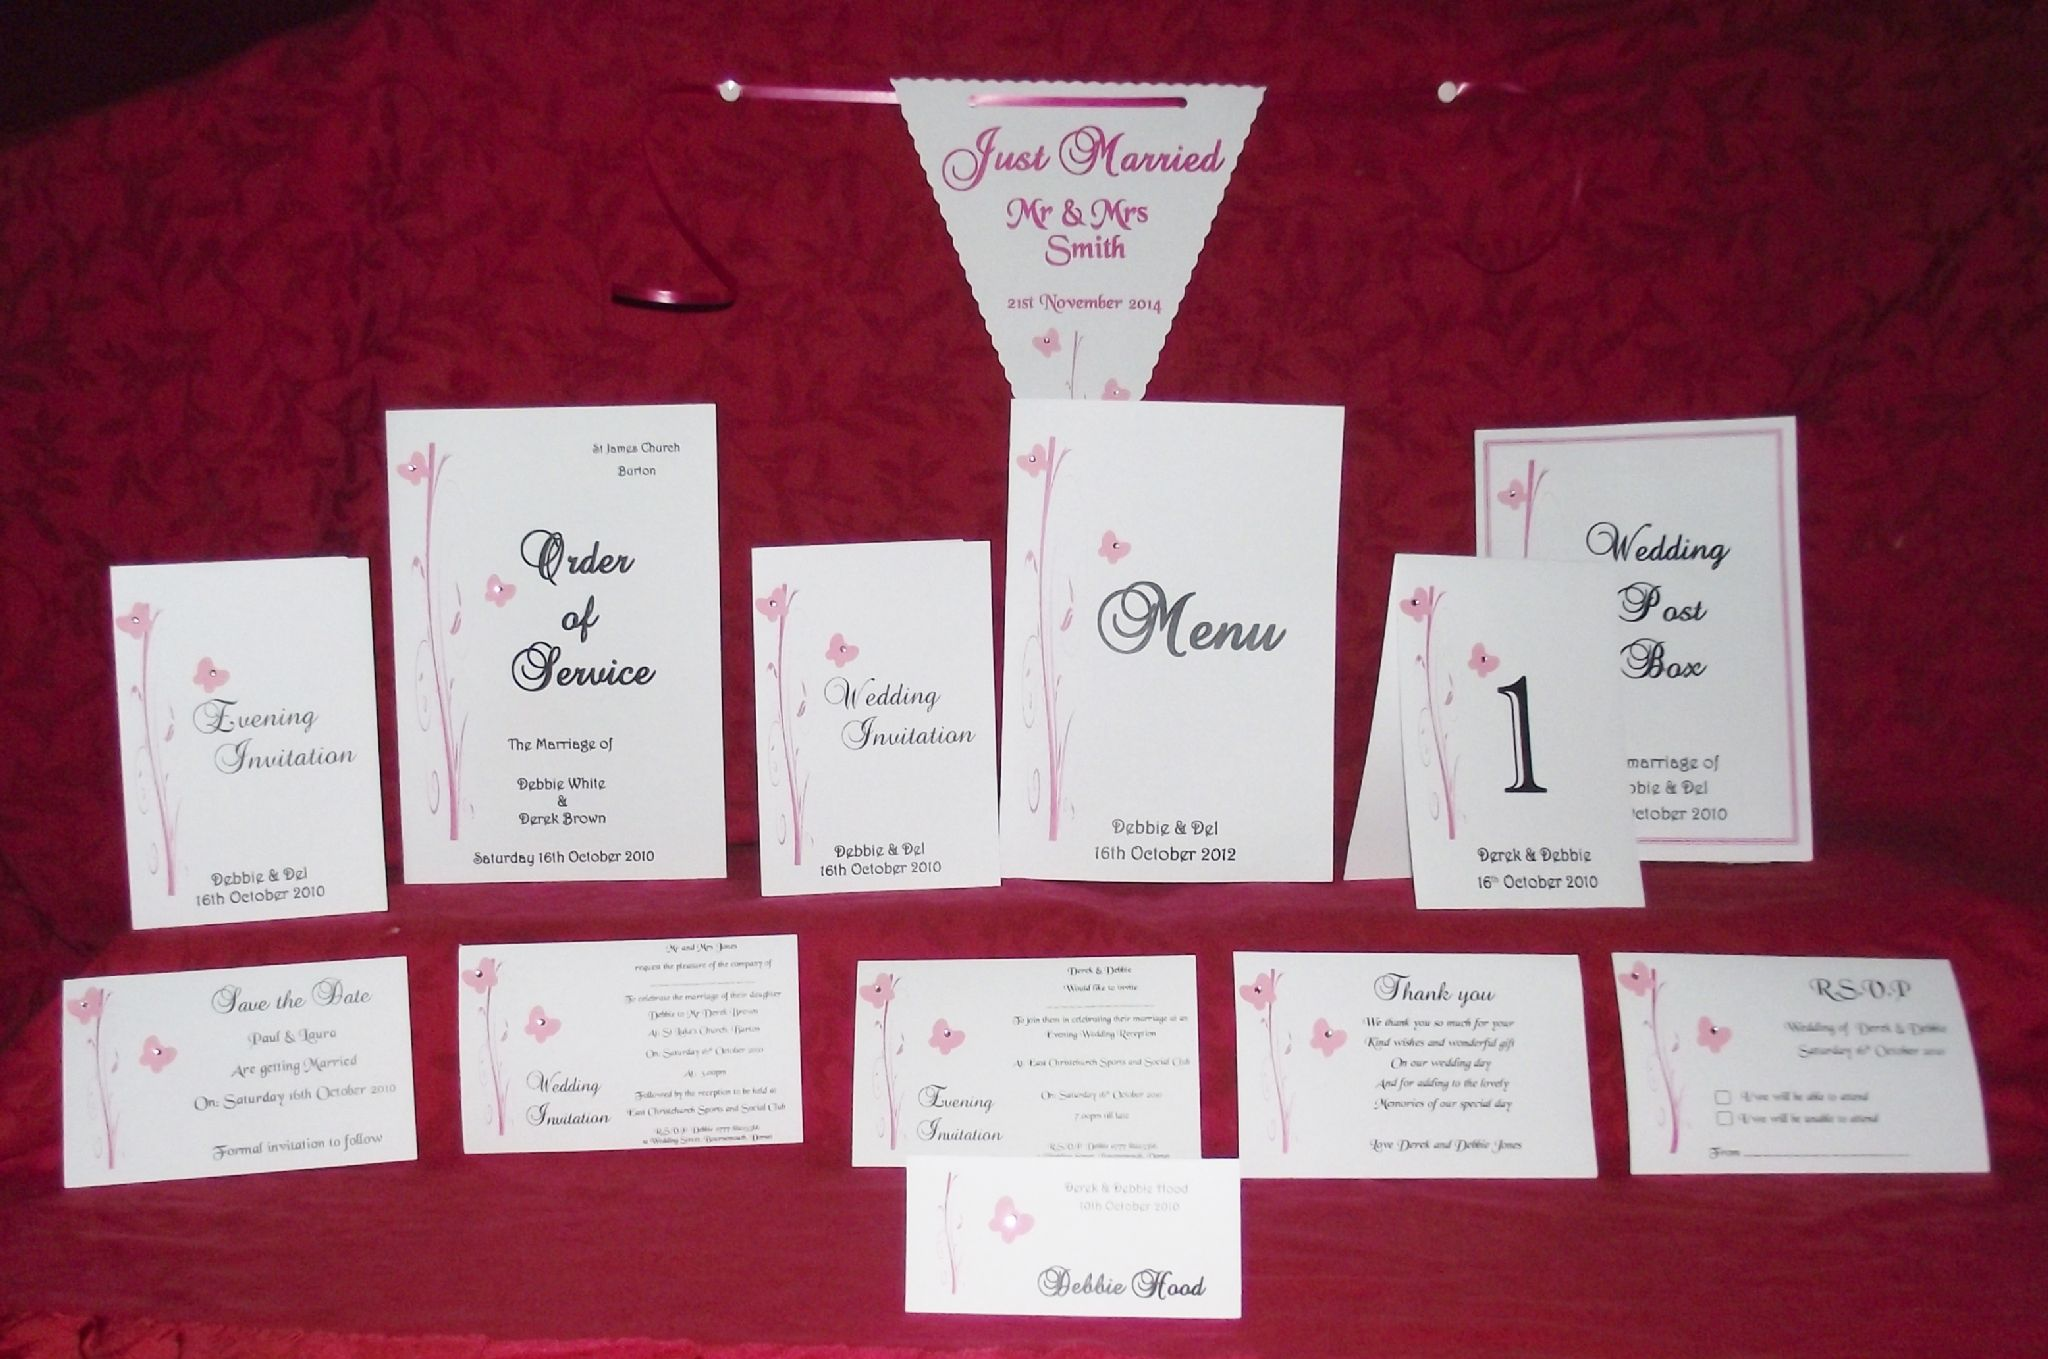 Table Place Names Wedding Butterfly scroll Design Details Various ...